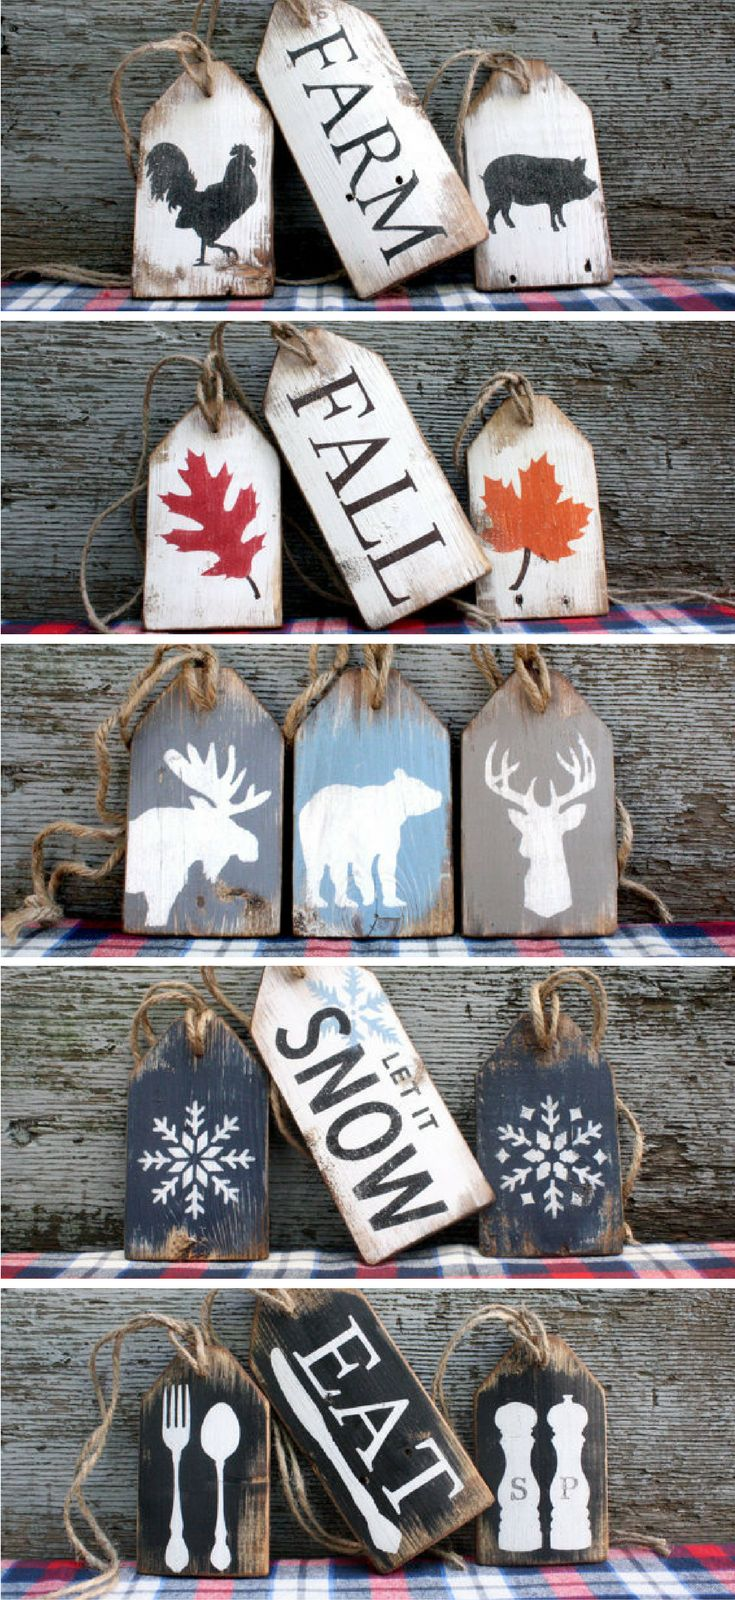 Rustic Wood Tags for all occasions #tags #wood #ad #fall #christmas #farmhouse #snow #moose #eat #deer #bear